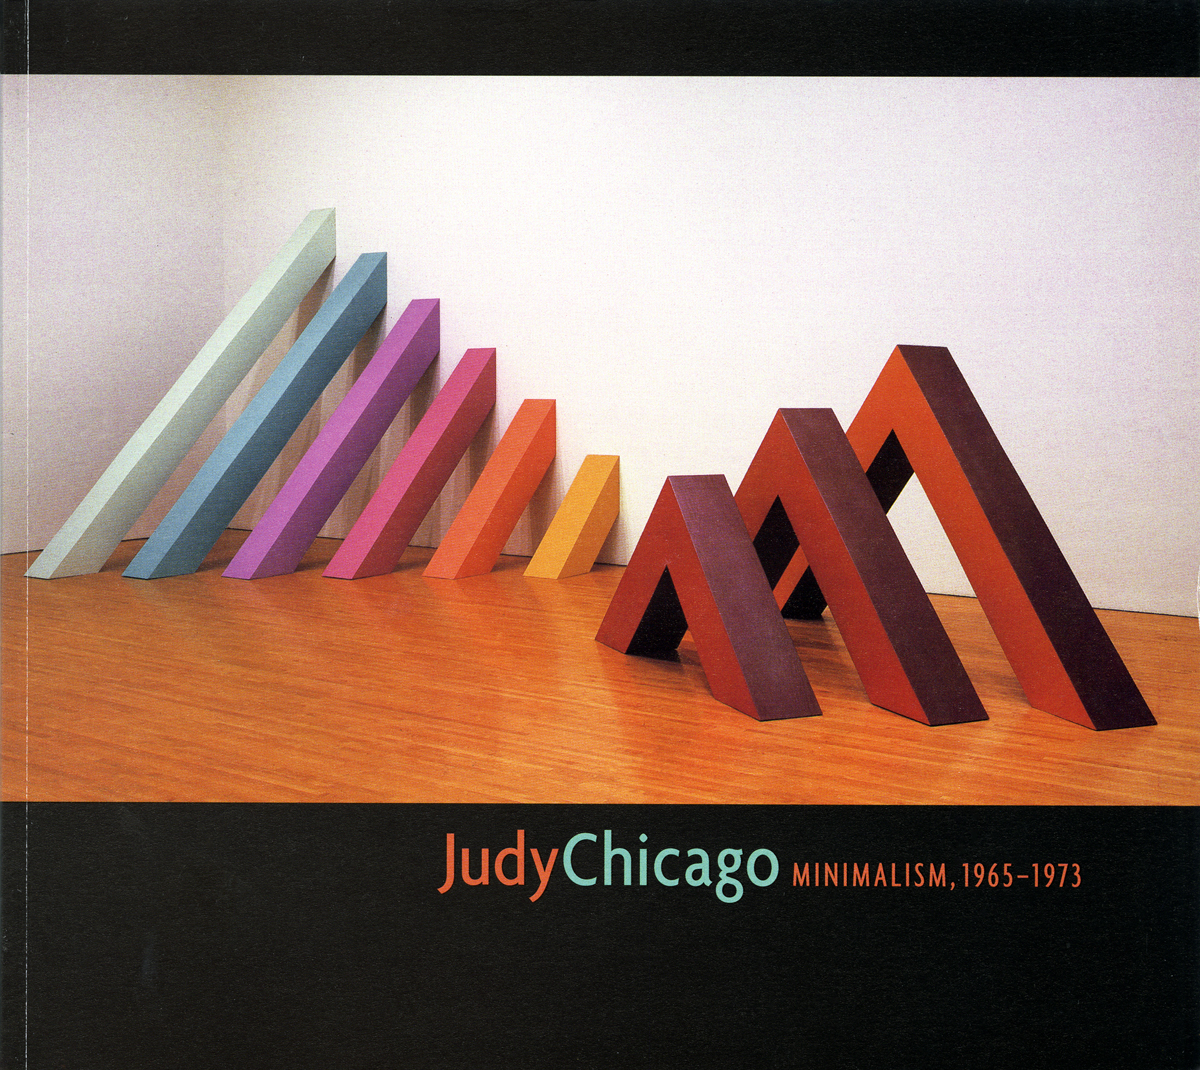 Jenni Sorkin, Judy Chicago: Minimalism, 1965-1973, Santa Fe, NM: LewAllen Contemporary, 2004. Published in conjection with the exhibition of the same name, shown in LewAllen Contemporary, Santa Fe, NM.